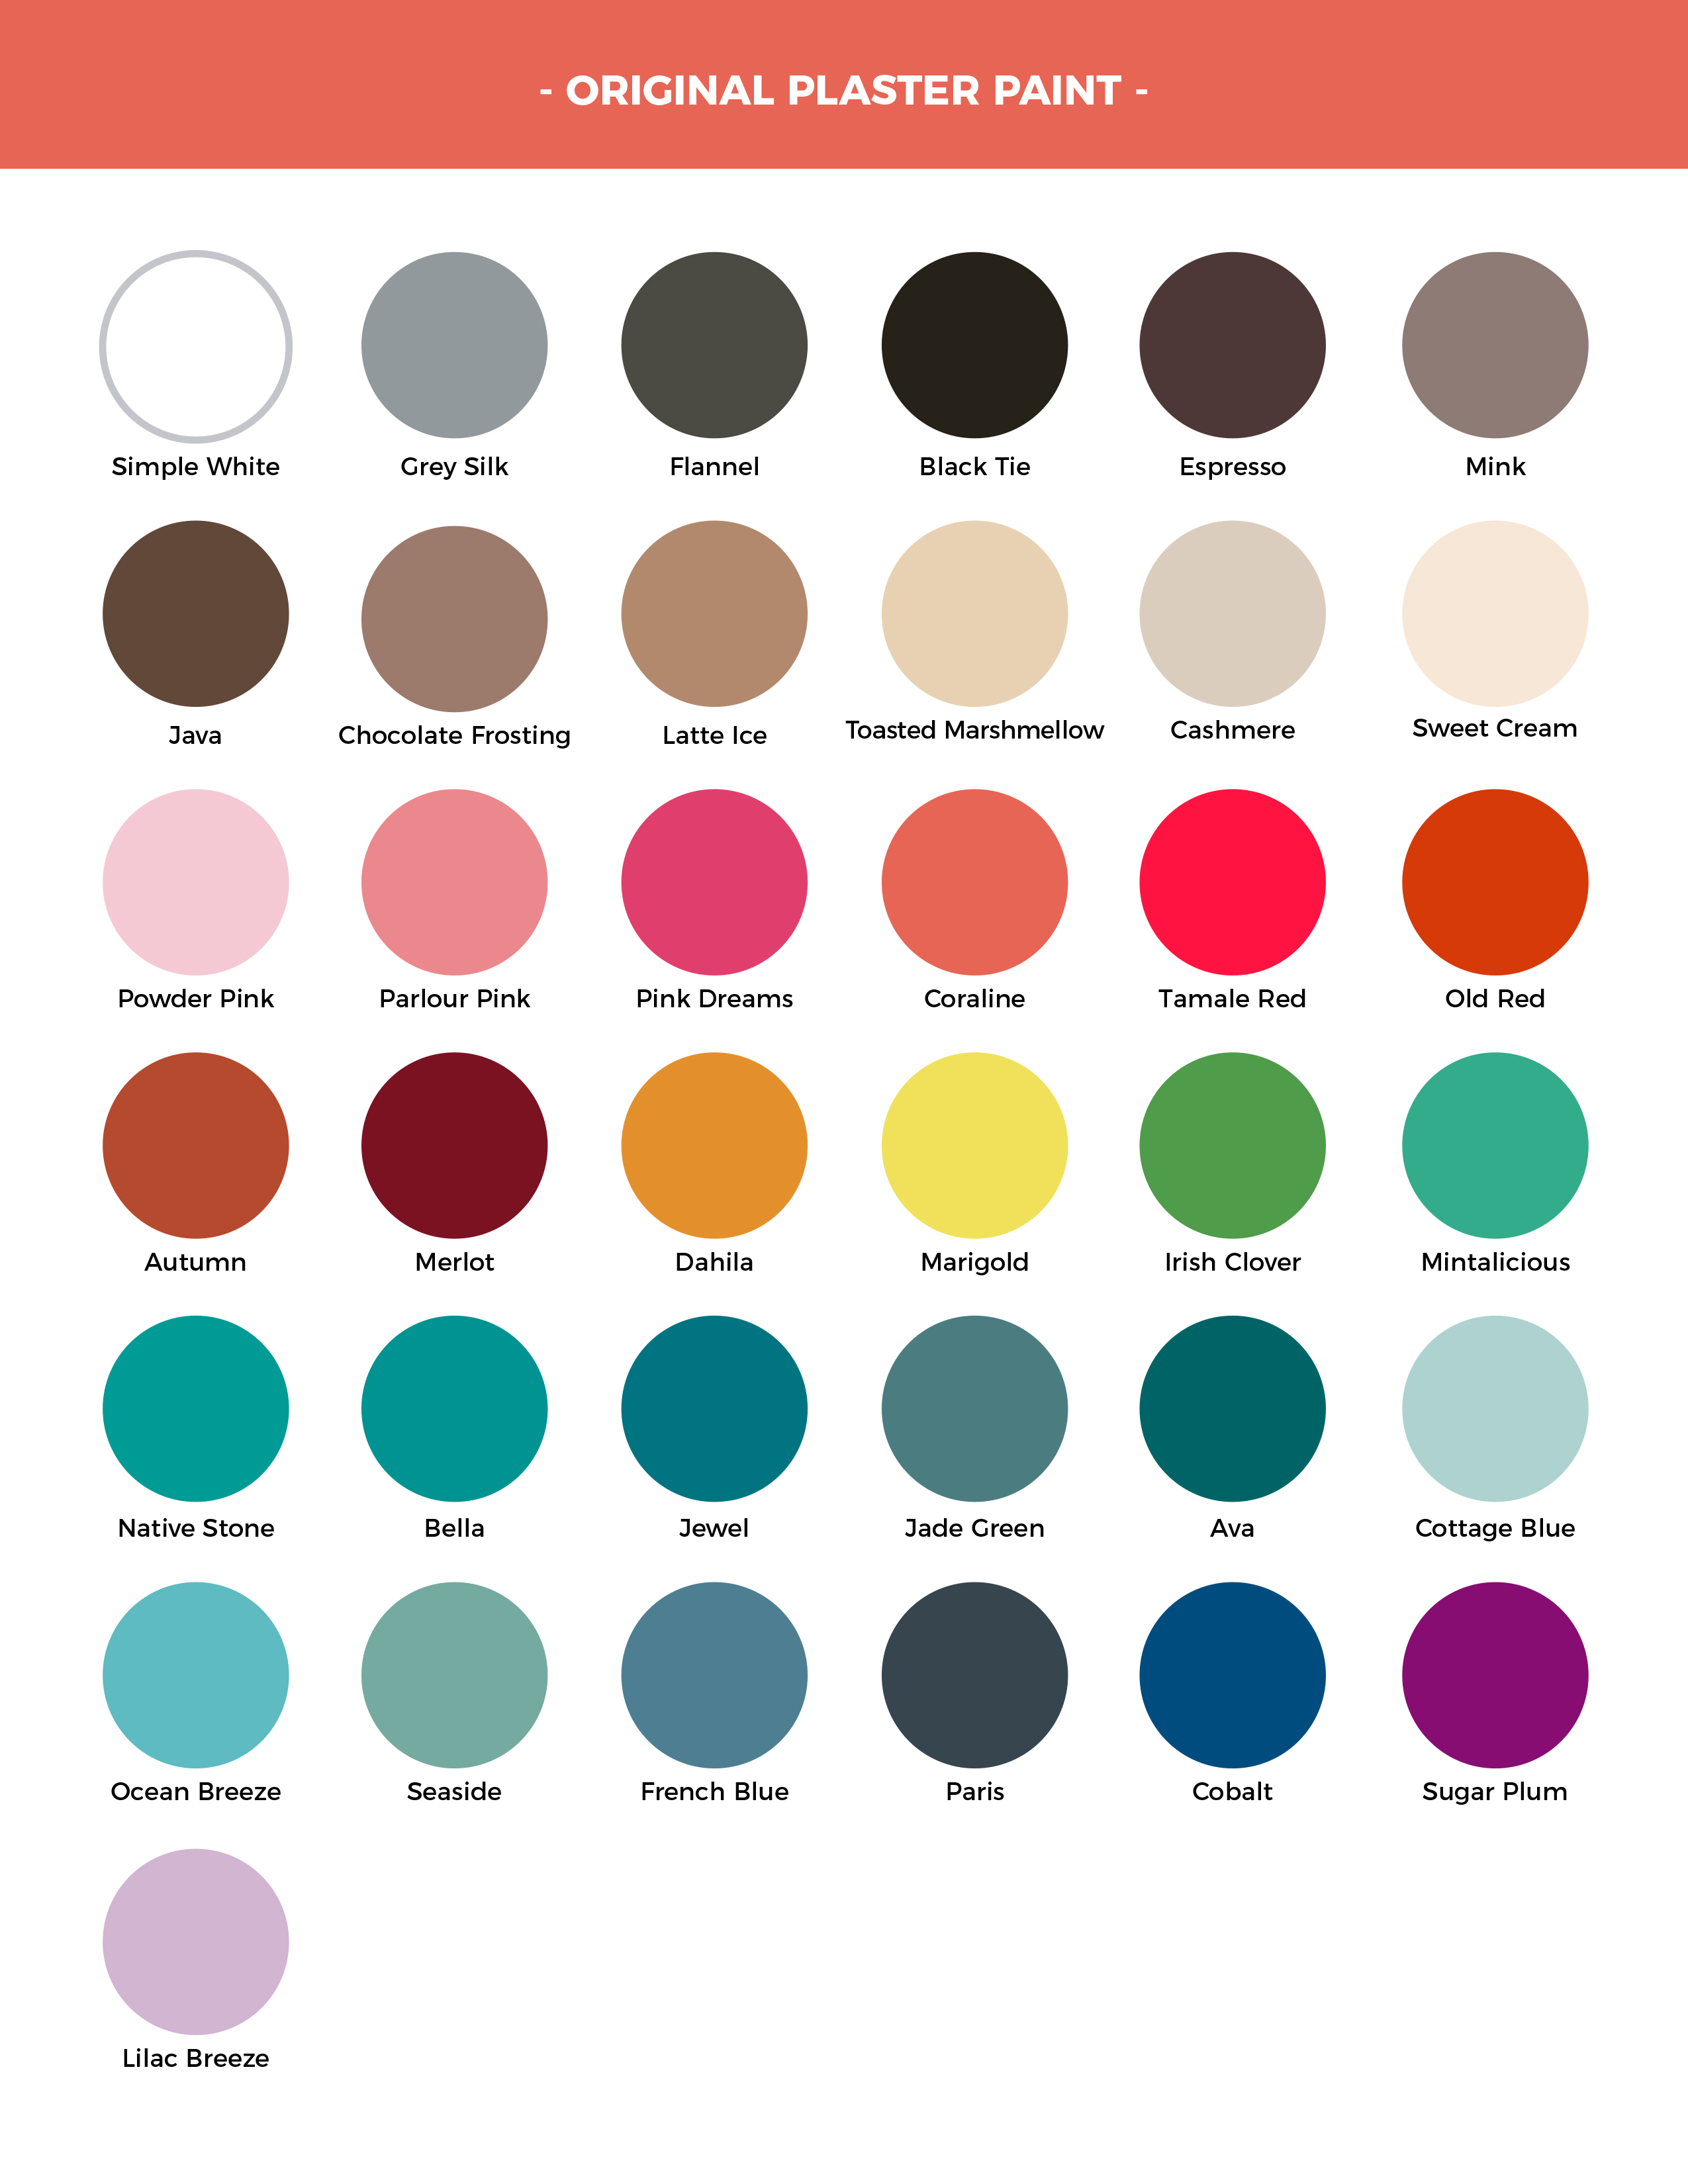 Anvil 980 color chart gallery free any chart examples anvil 980 color chart images free any chart examples anvil 980 color chart gallery free any nvjuhfo Image collections